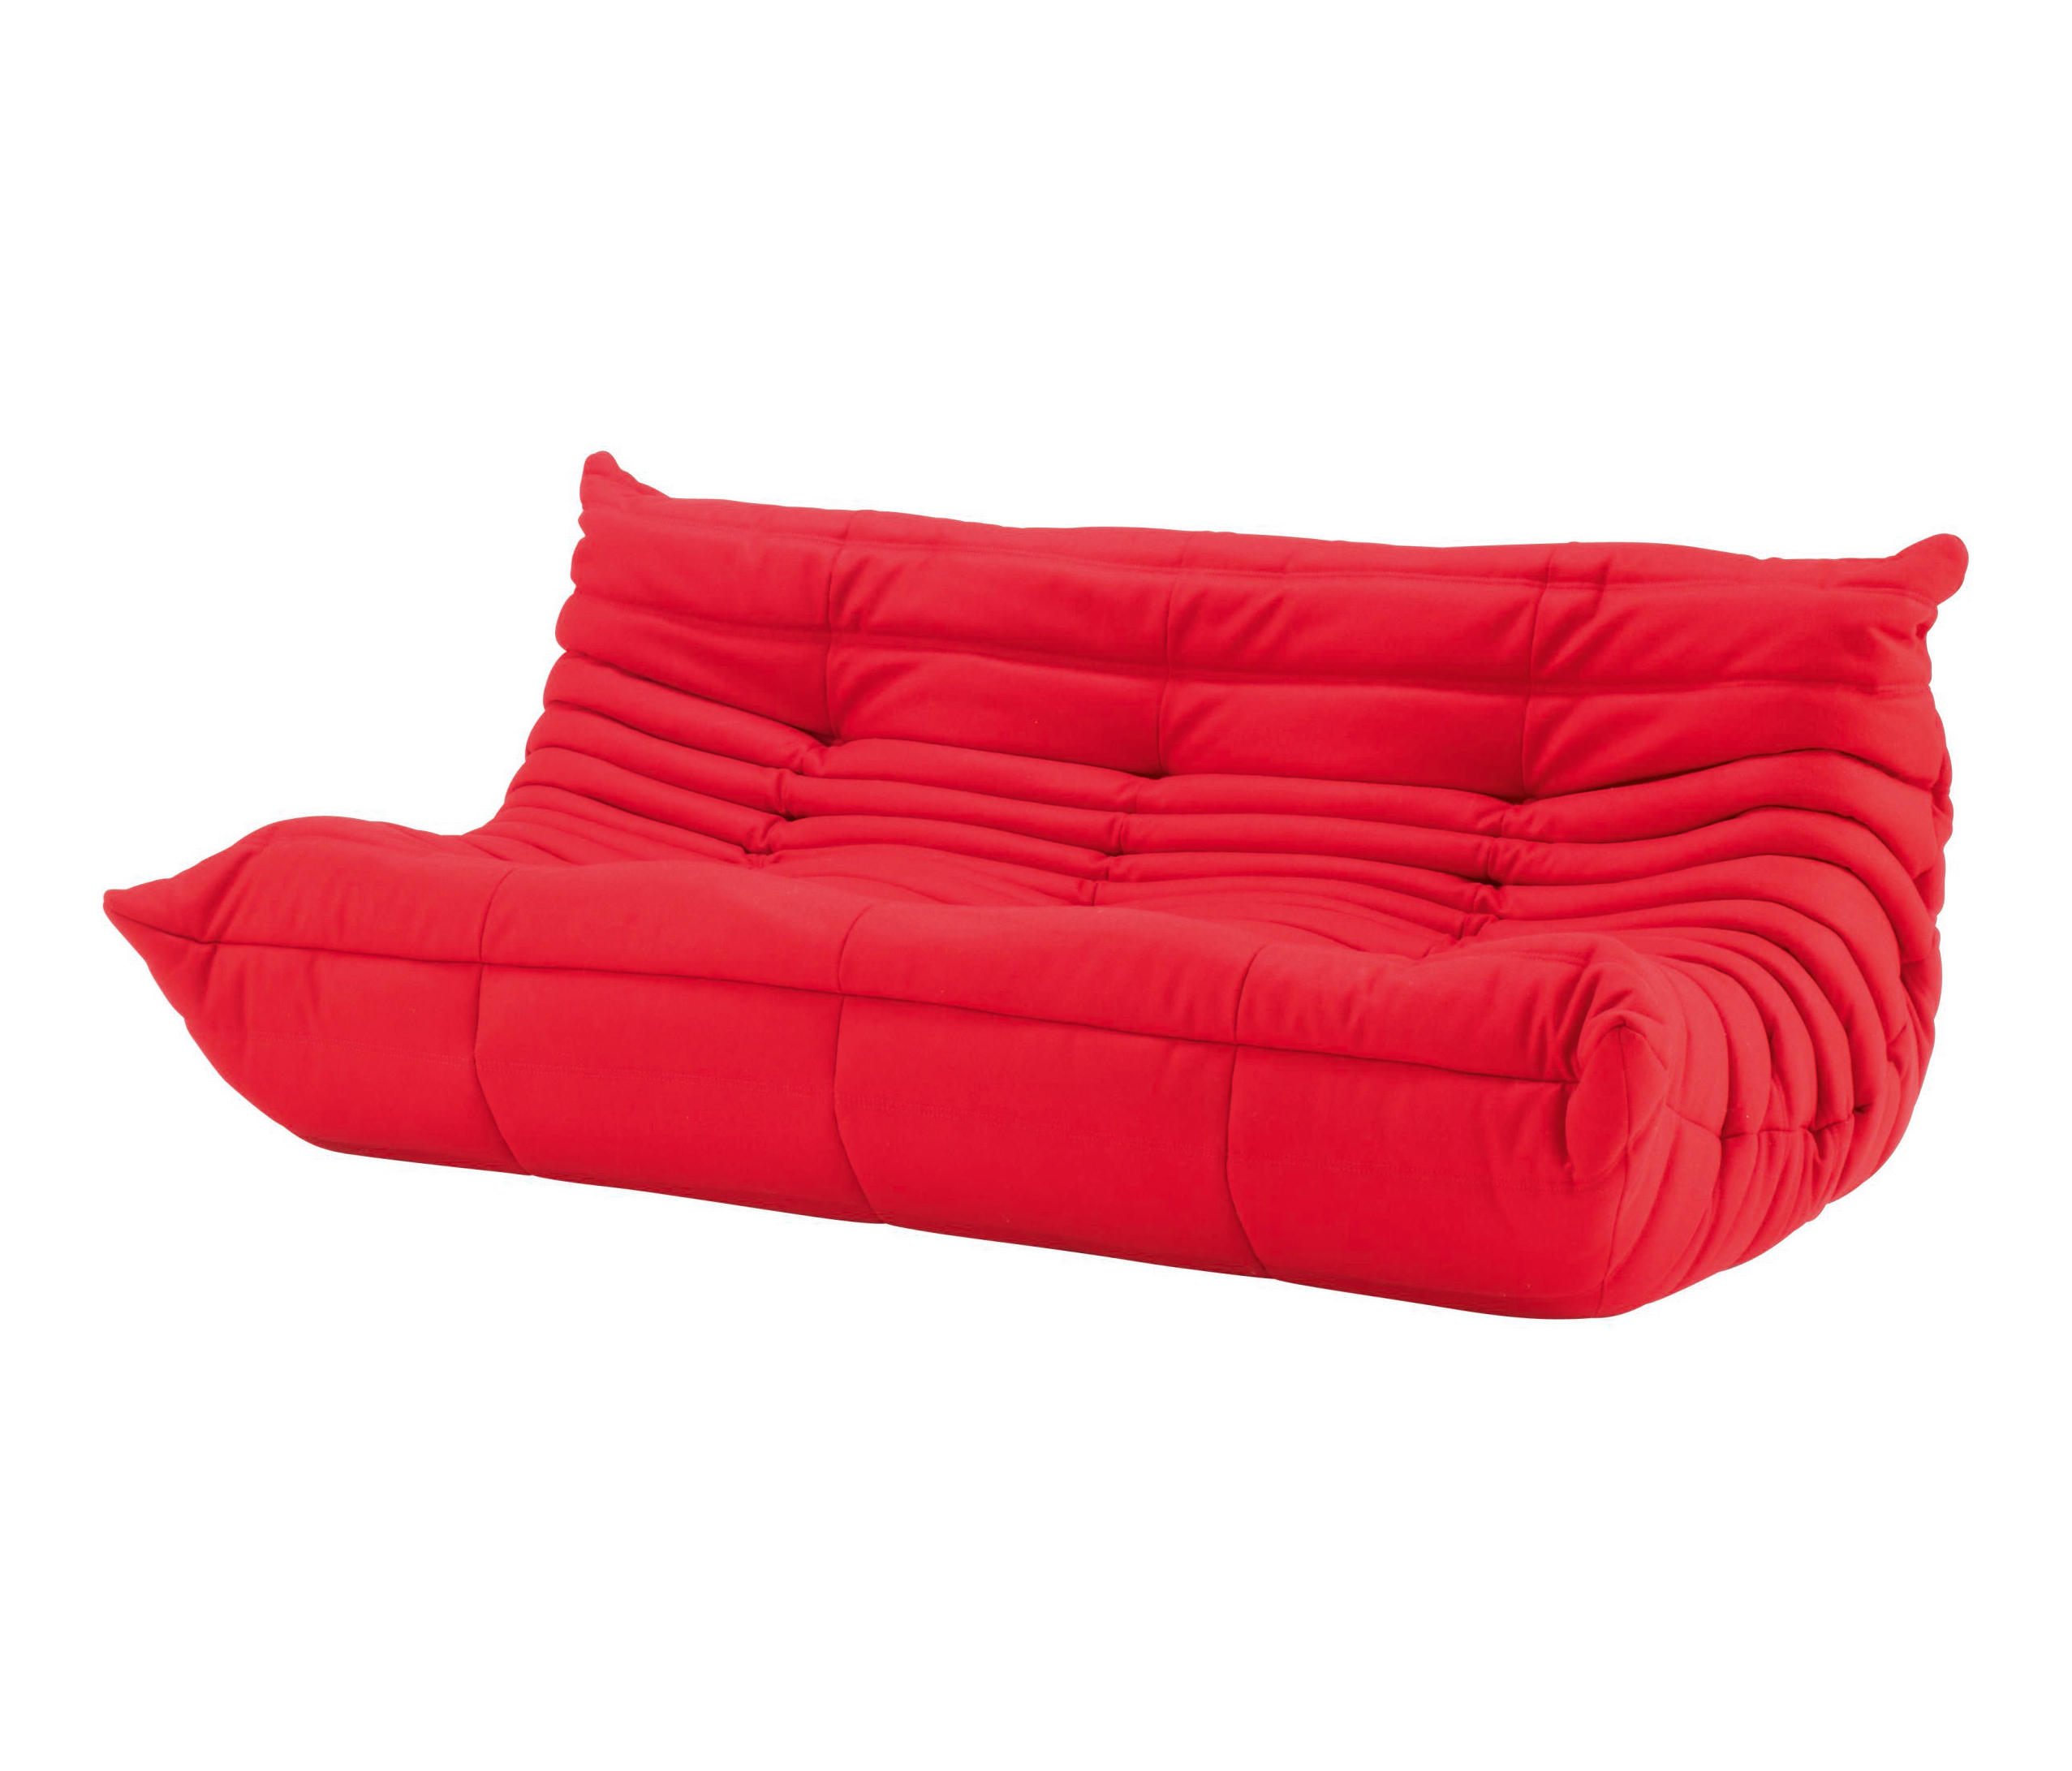 Togo Large Settee Without Arms Sofas From Ligne Roset Architonic